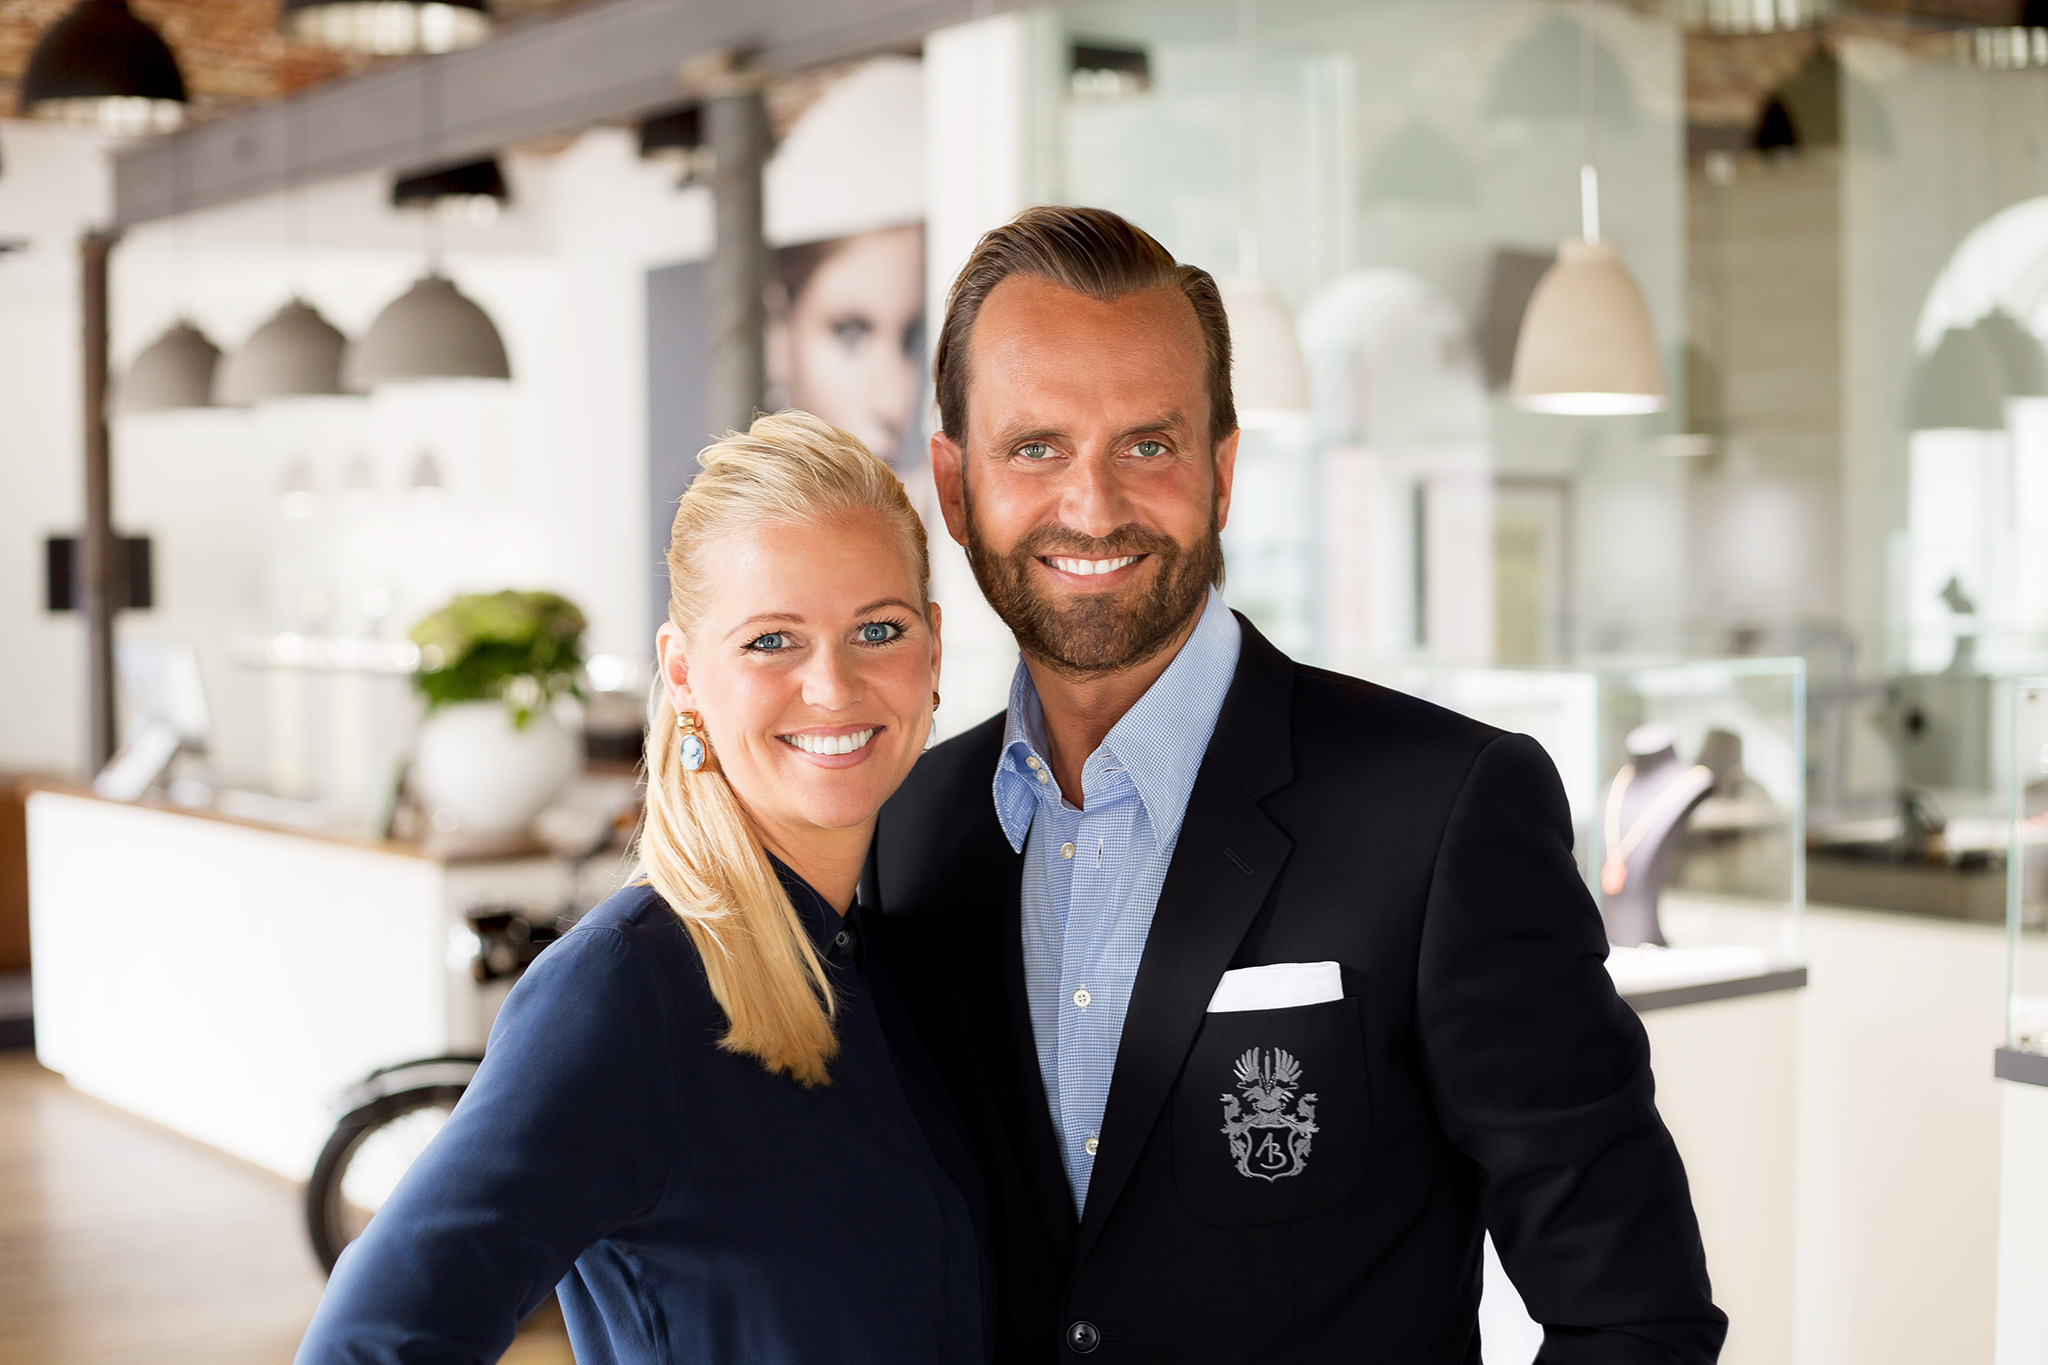 Anna und Stephan Schneider Brauksiepe, Brauksiepe Juwelier, Goldschmiedemanufaktur Brauksiepe, Lifestyle Blog, Fashion-blog, Lieblingsstil.com,